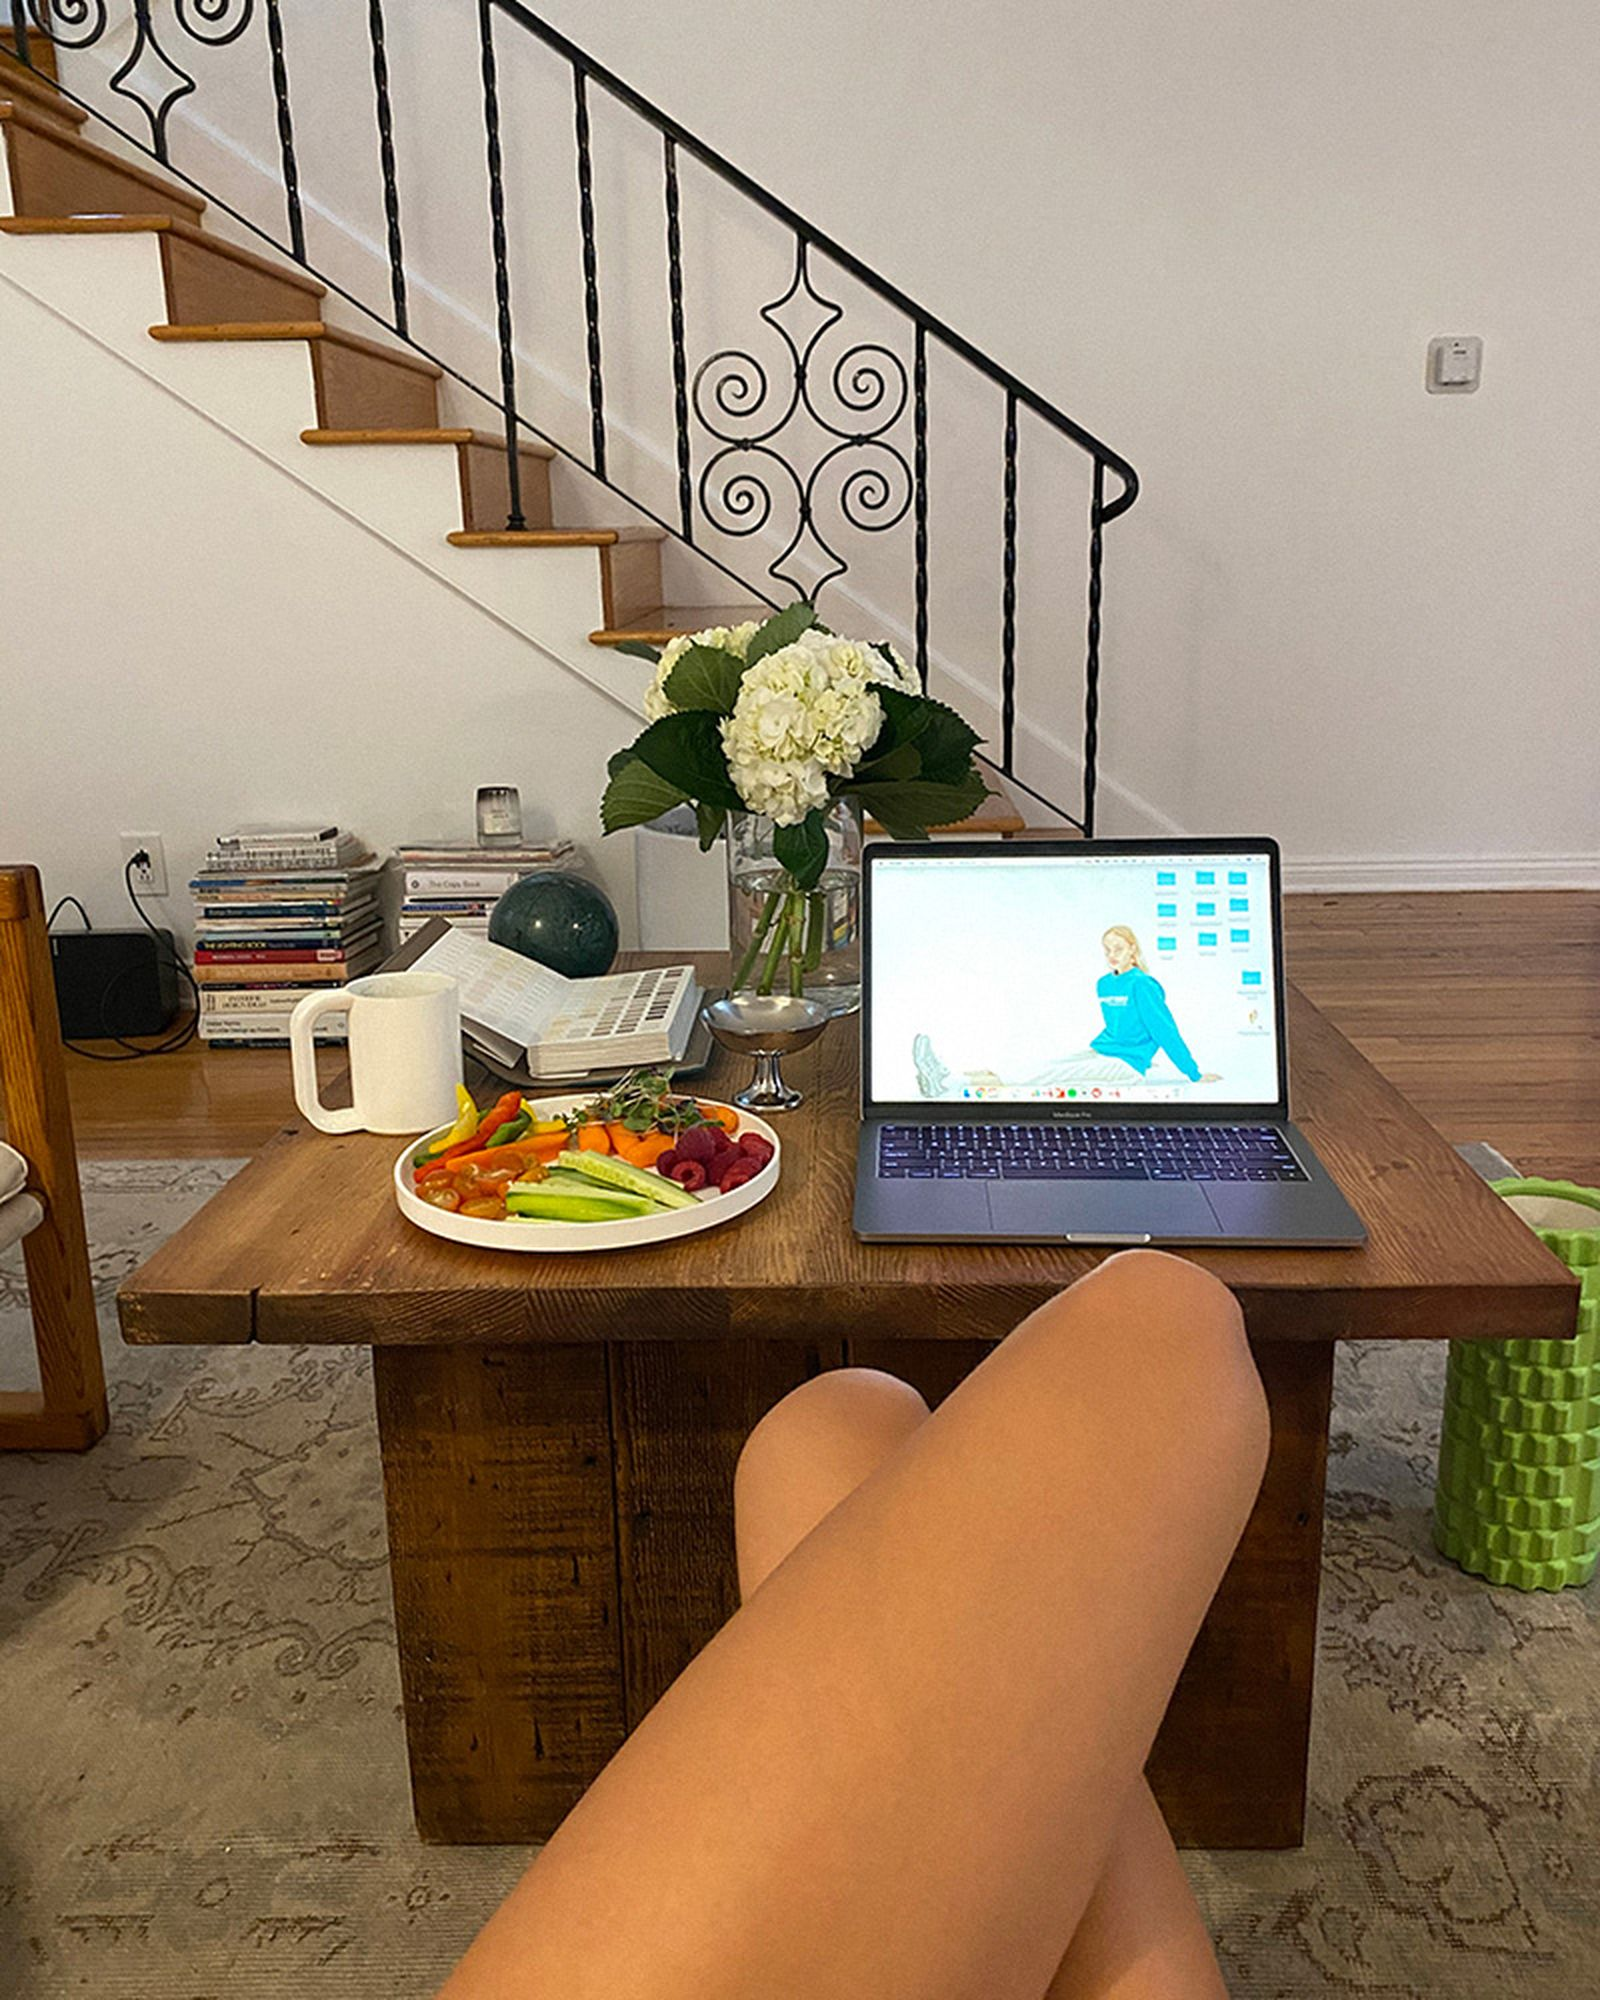 wfh-office-tour-look-inside-home-offices-emily-oberg-05